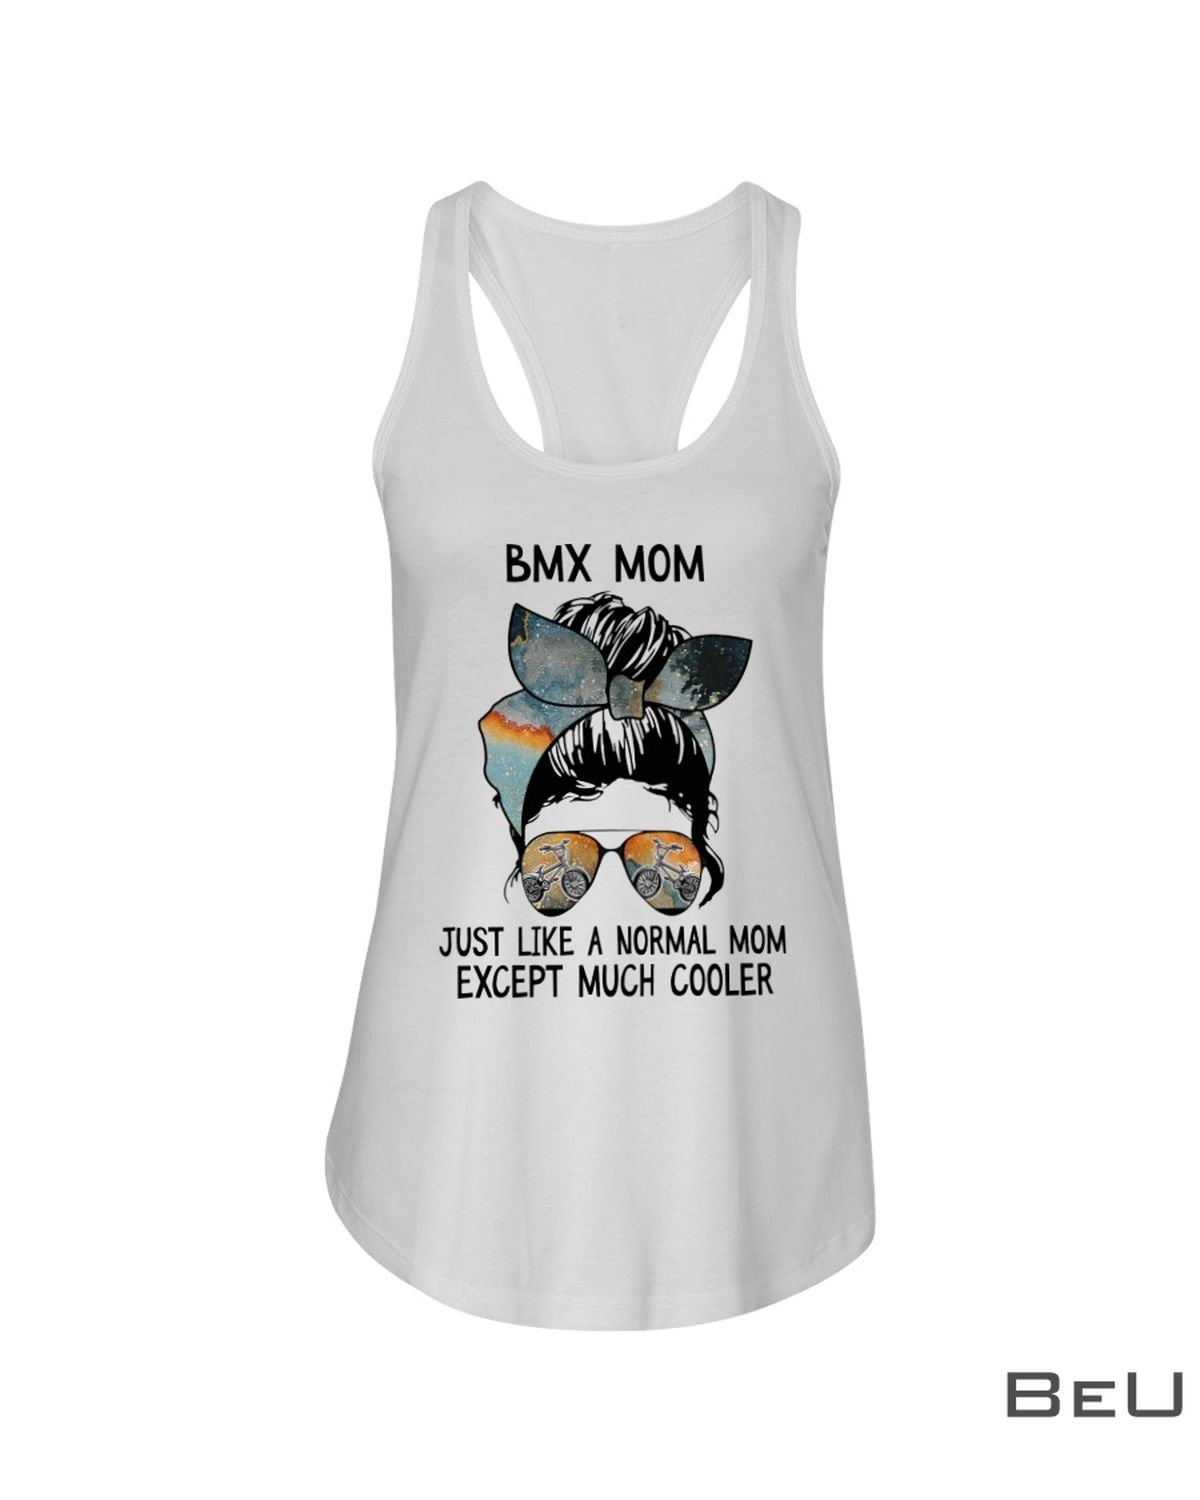 Bxm Mom Jist Like A Normal Mom Expect Much Cooler Shirtx